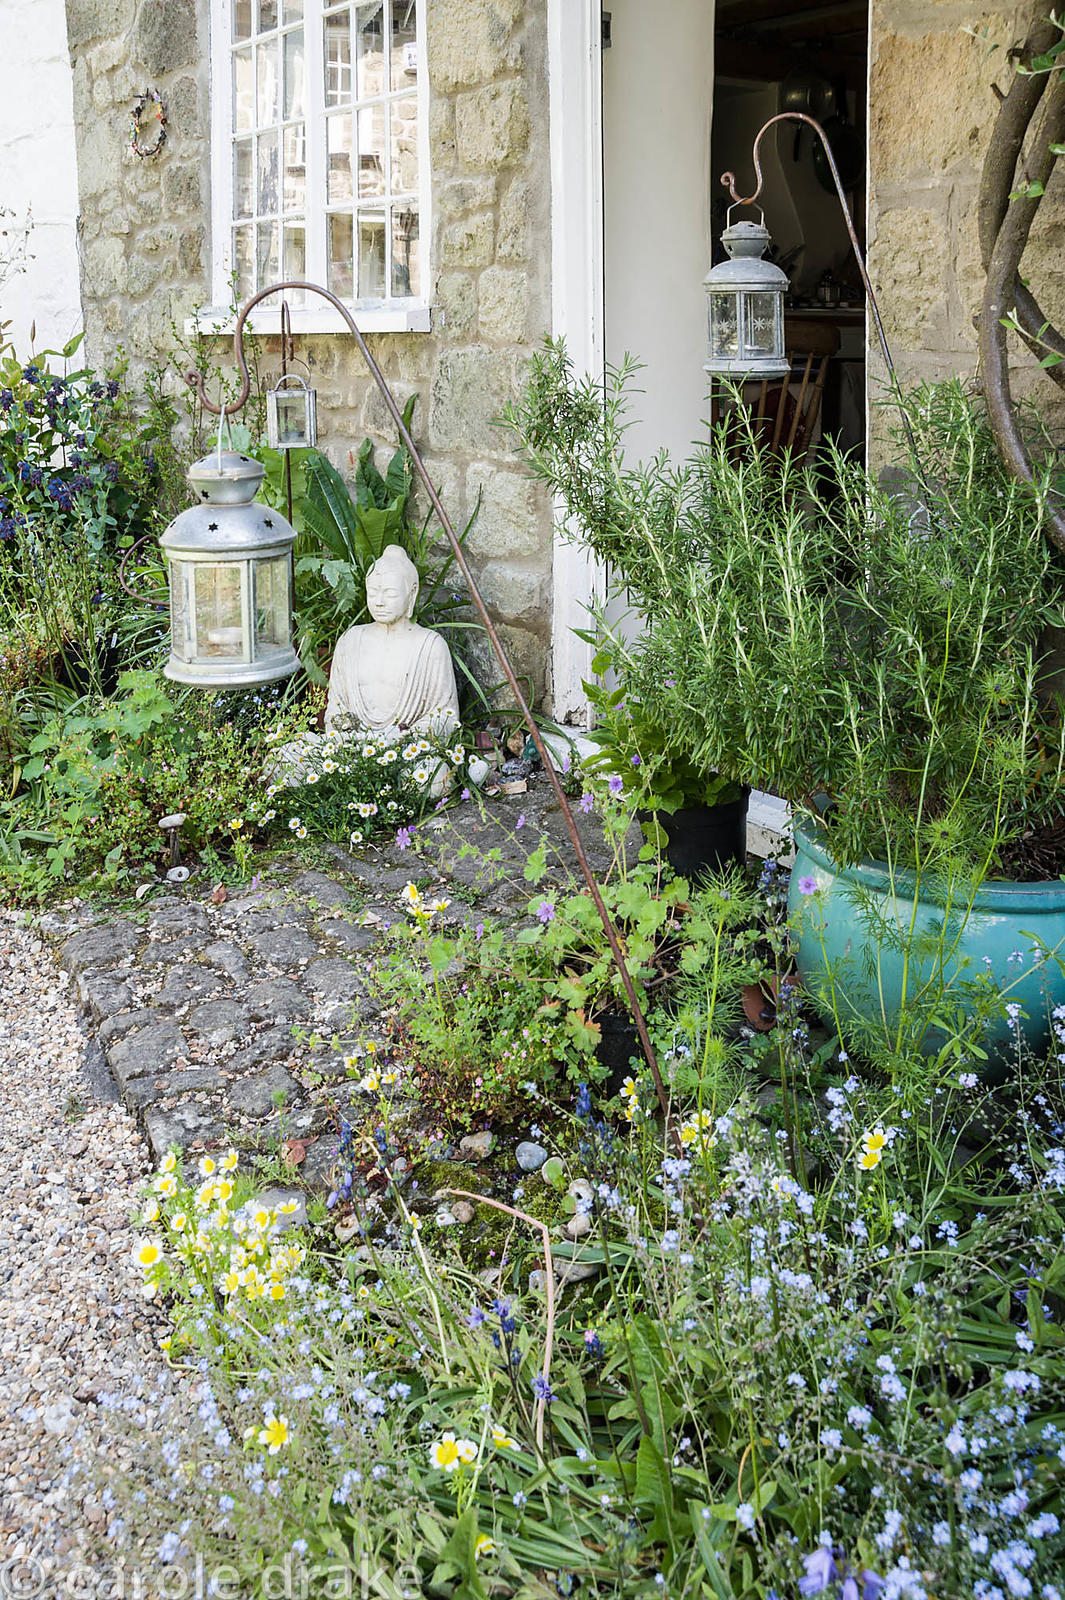 Insect friendly plants around Brigit Strawbridge's front door in the historic Pump Yard include forget-me-nots, Limanthes dou...